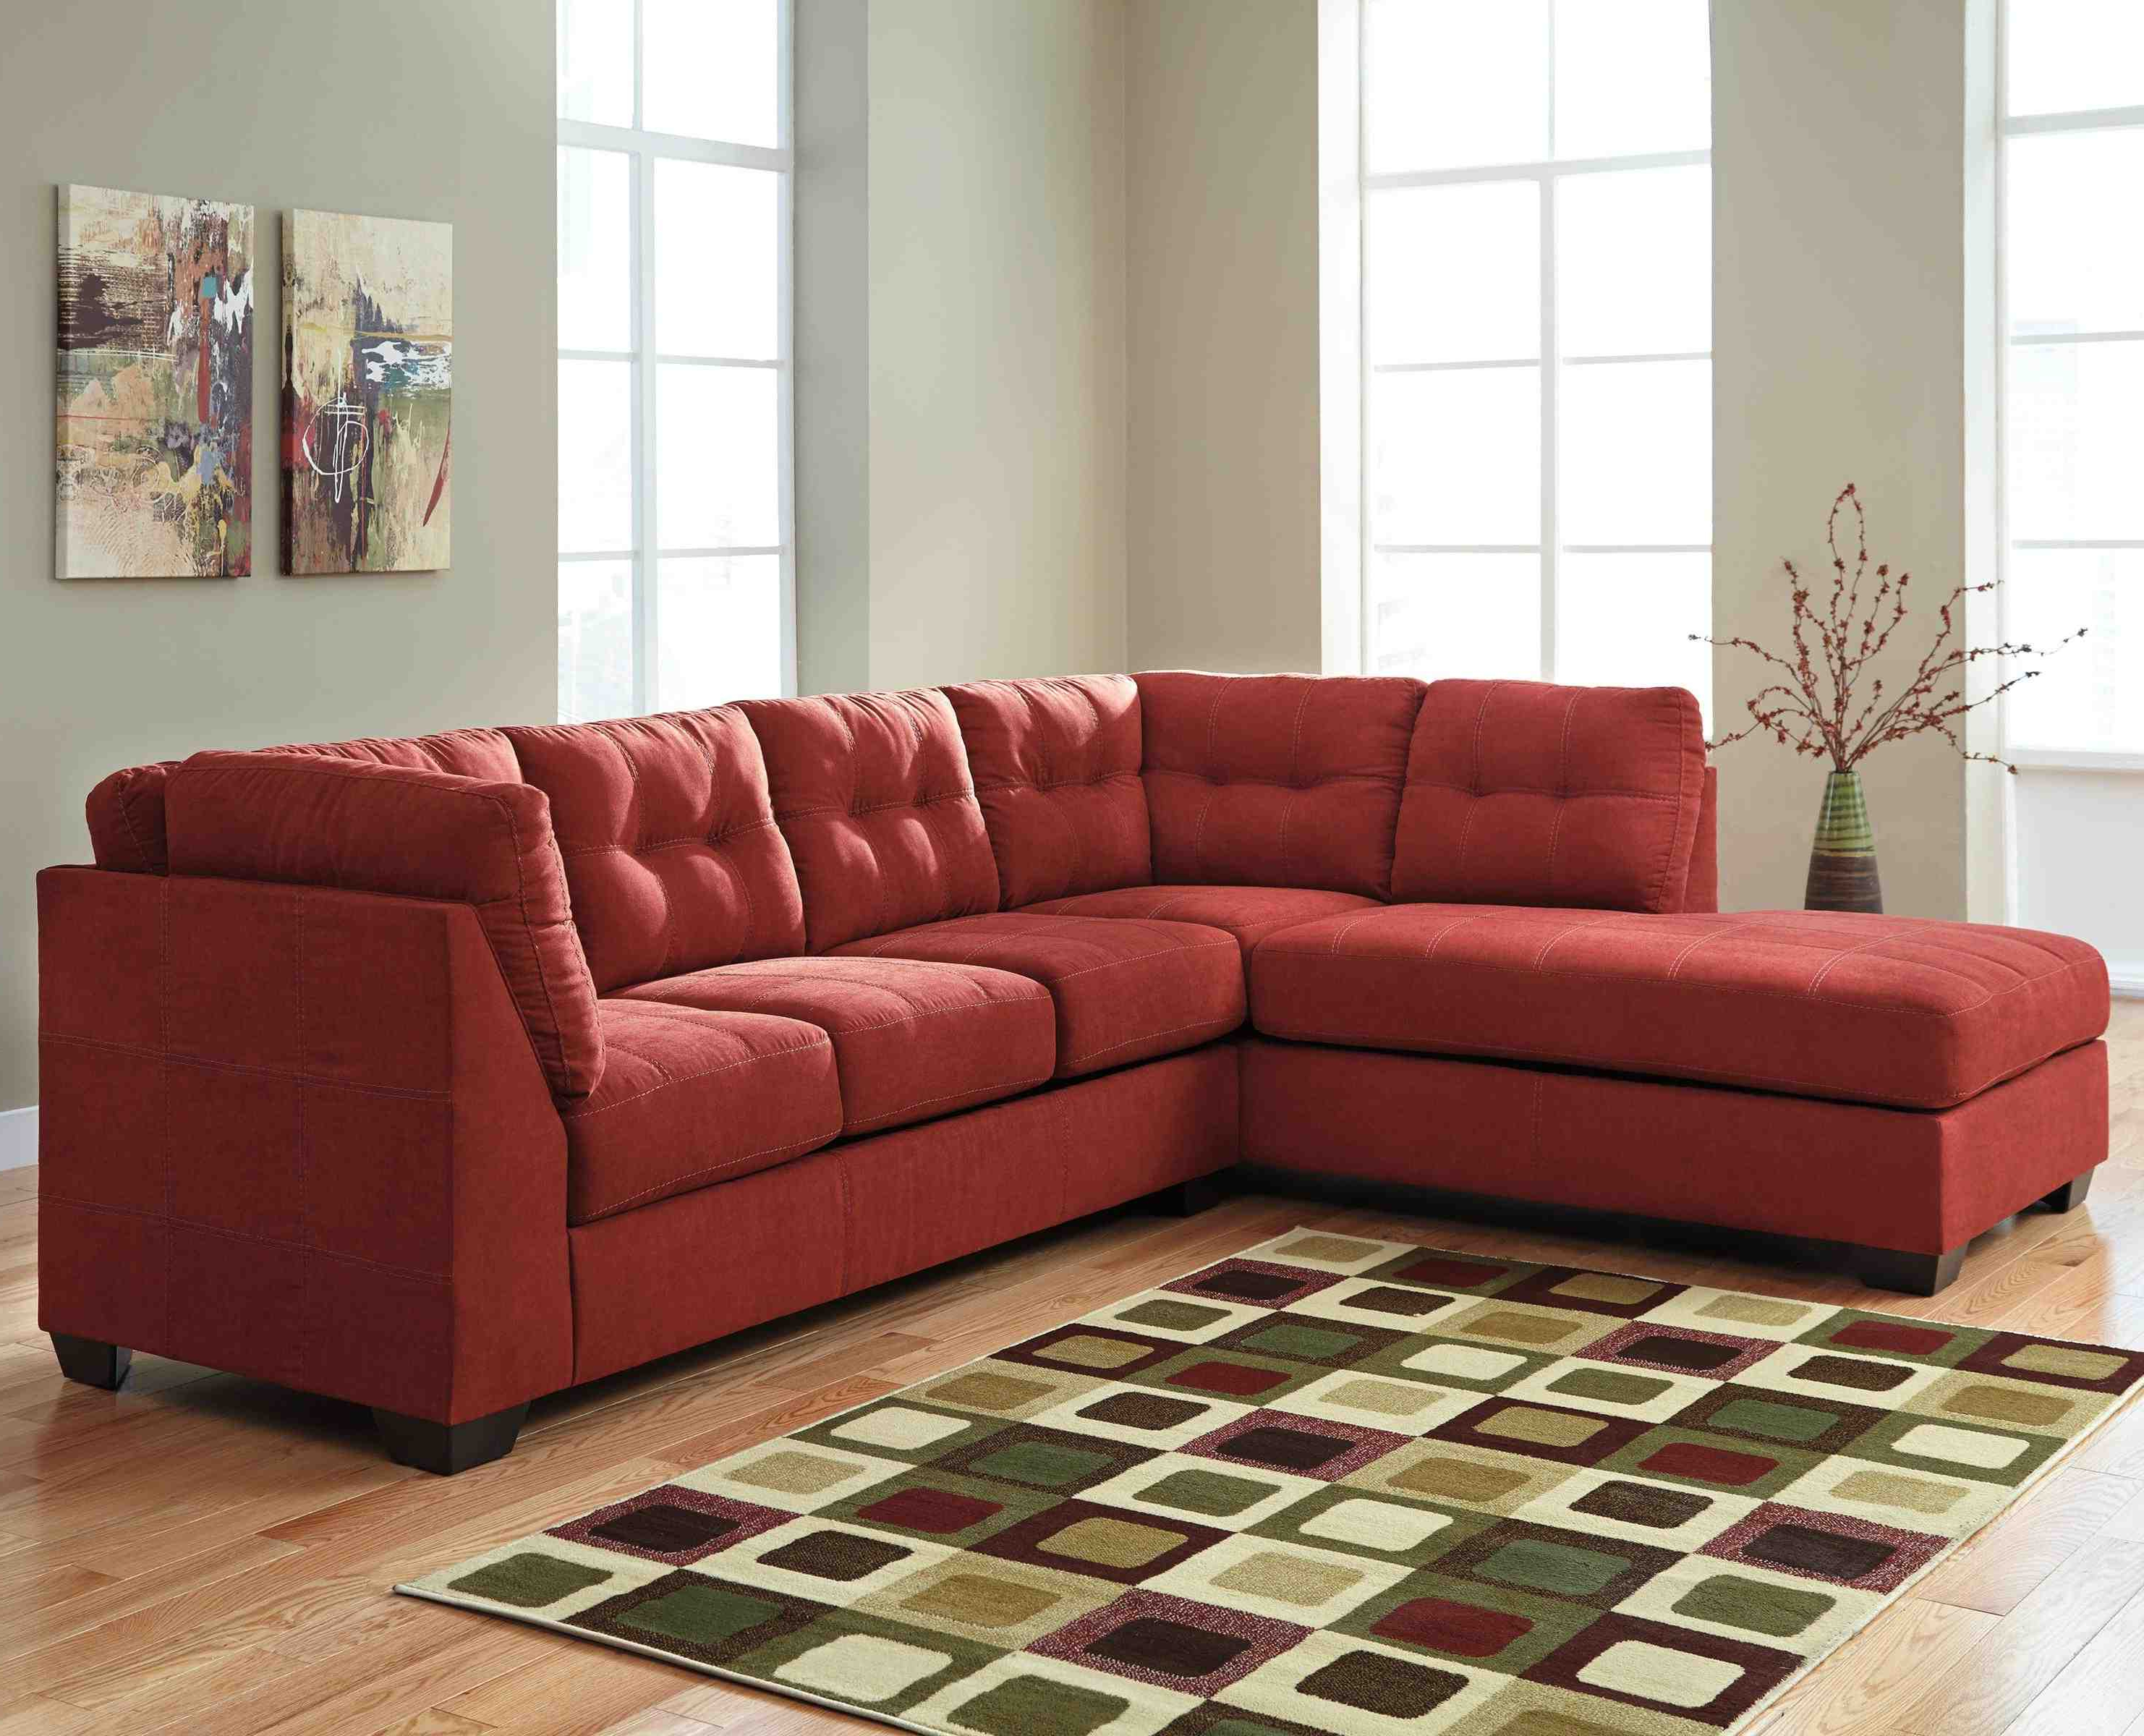 Arrowmask 2 Piece Sectionals With Laf Chaise For Recent Delano 2 Piece Sectional W/laf Oversized Chaise Living Spaces (View 13 of 20)